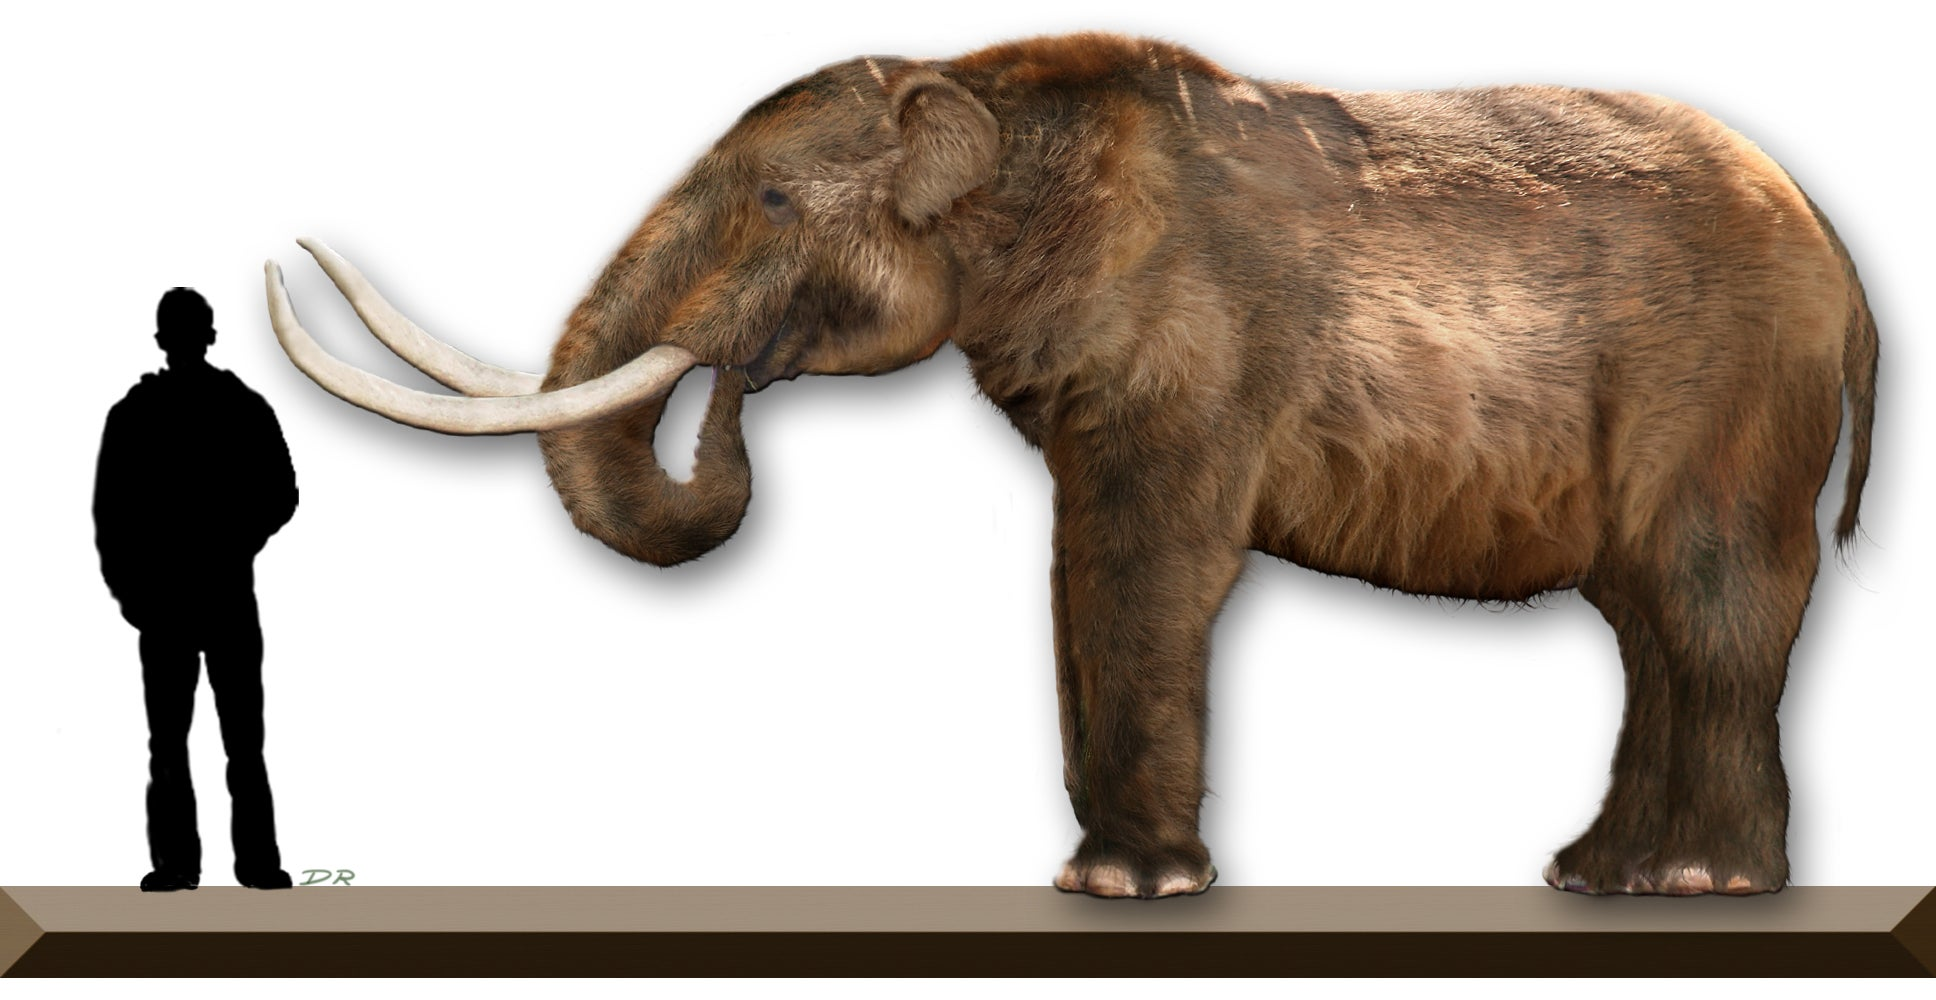 A mastodon carcass could totally rewrite American history—but there's reason to be skeptical